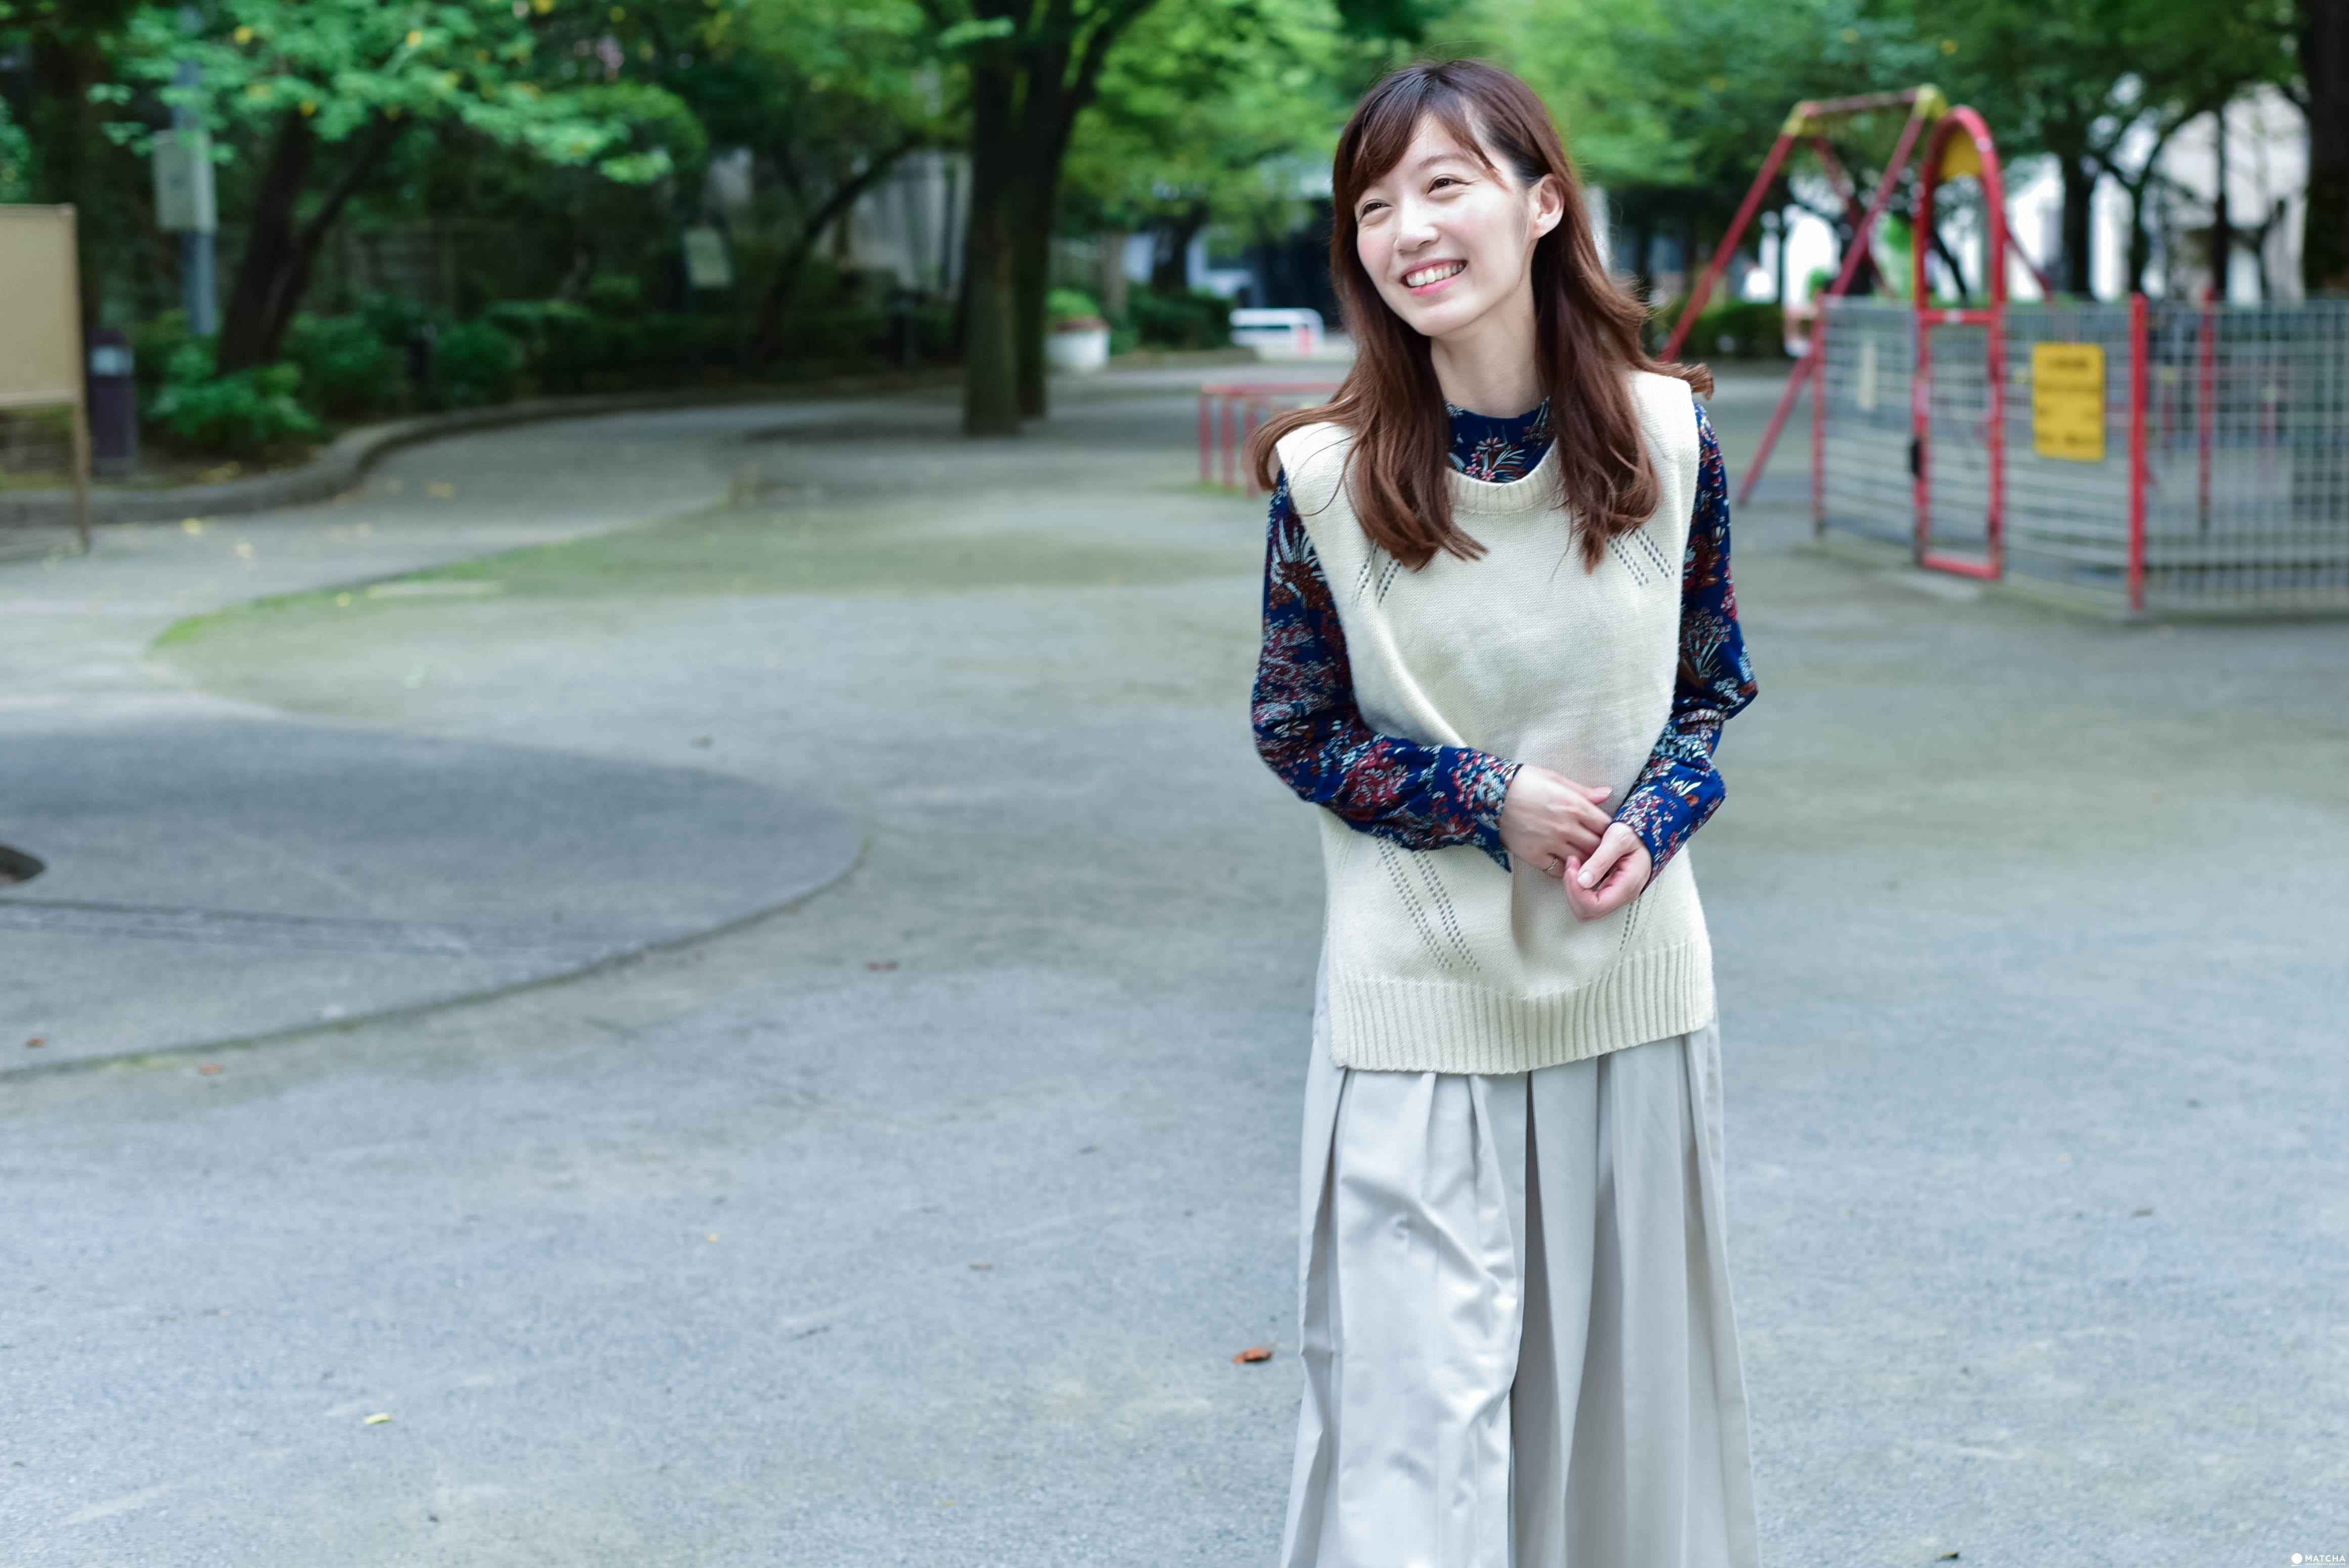 Weather and Outfits for the Keihanshin region in October